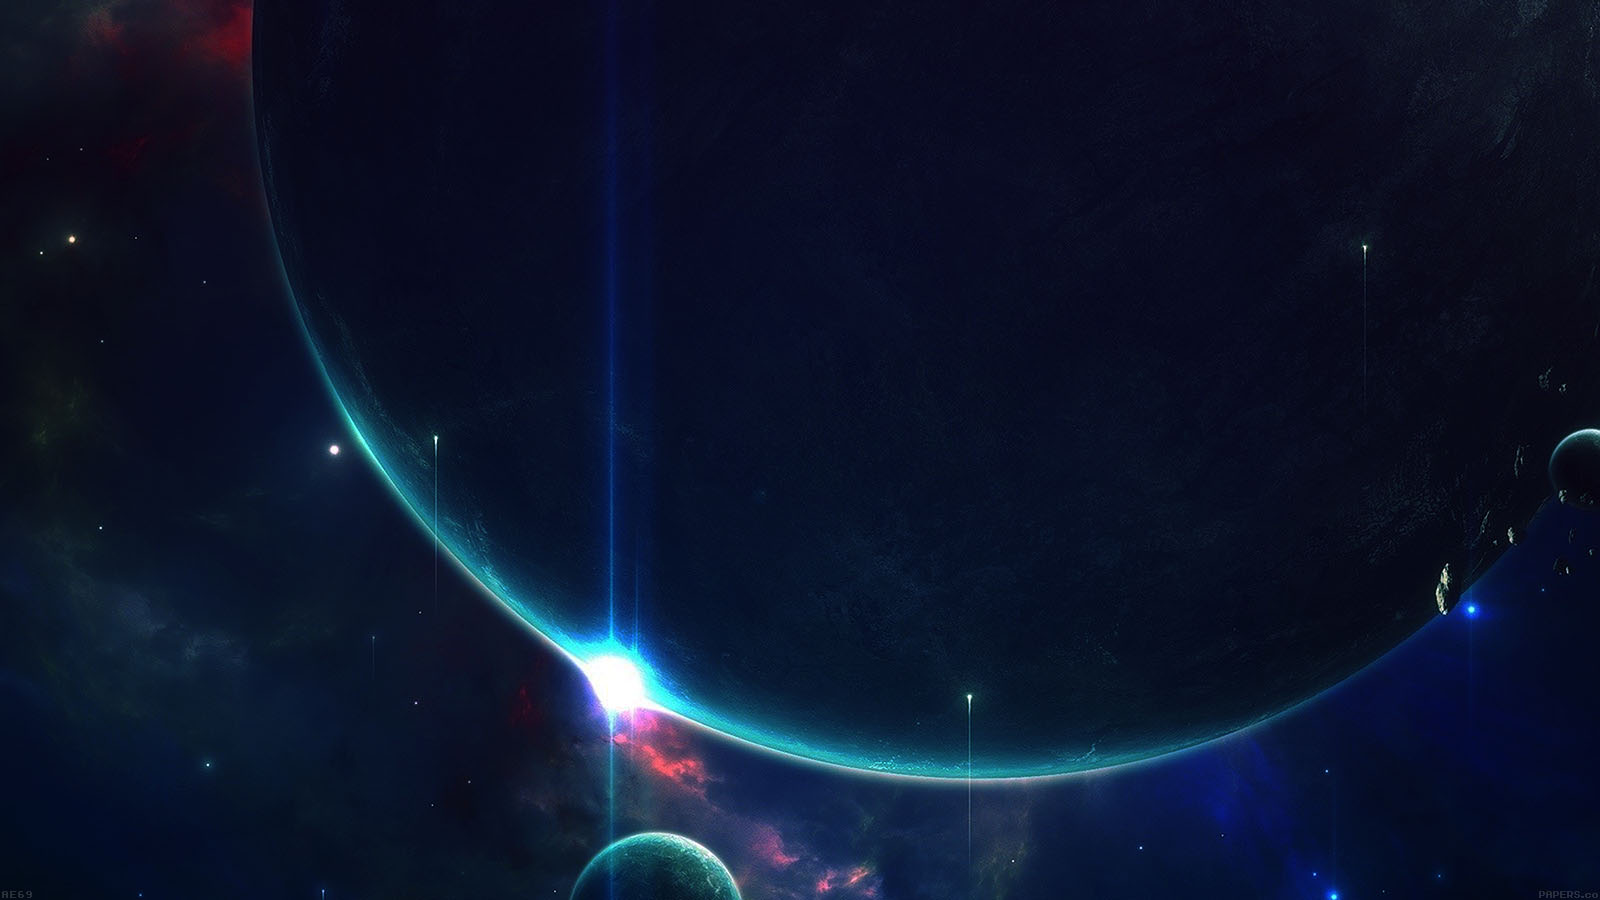 wallpaper for desktop, laptop | ae69-space-of-mystery ...